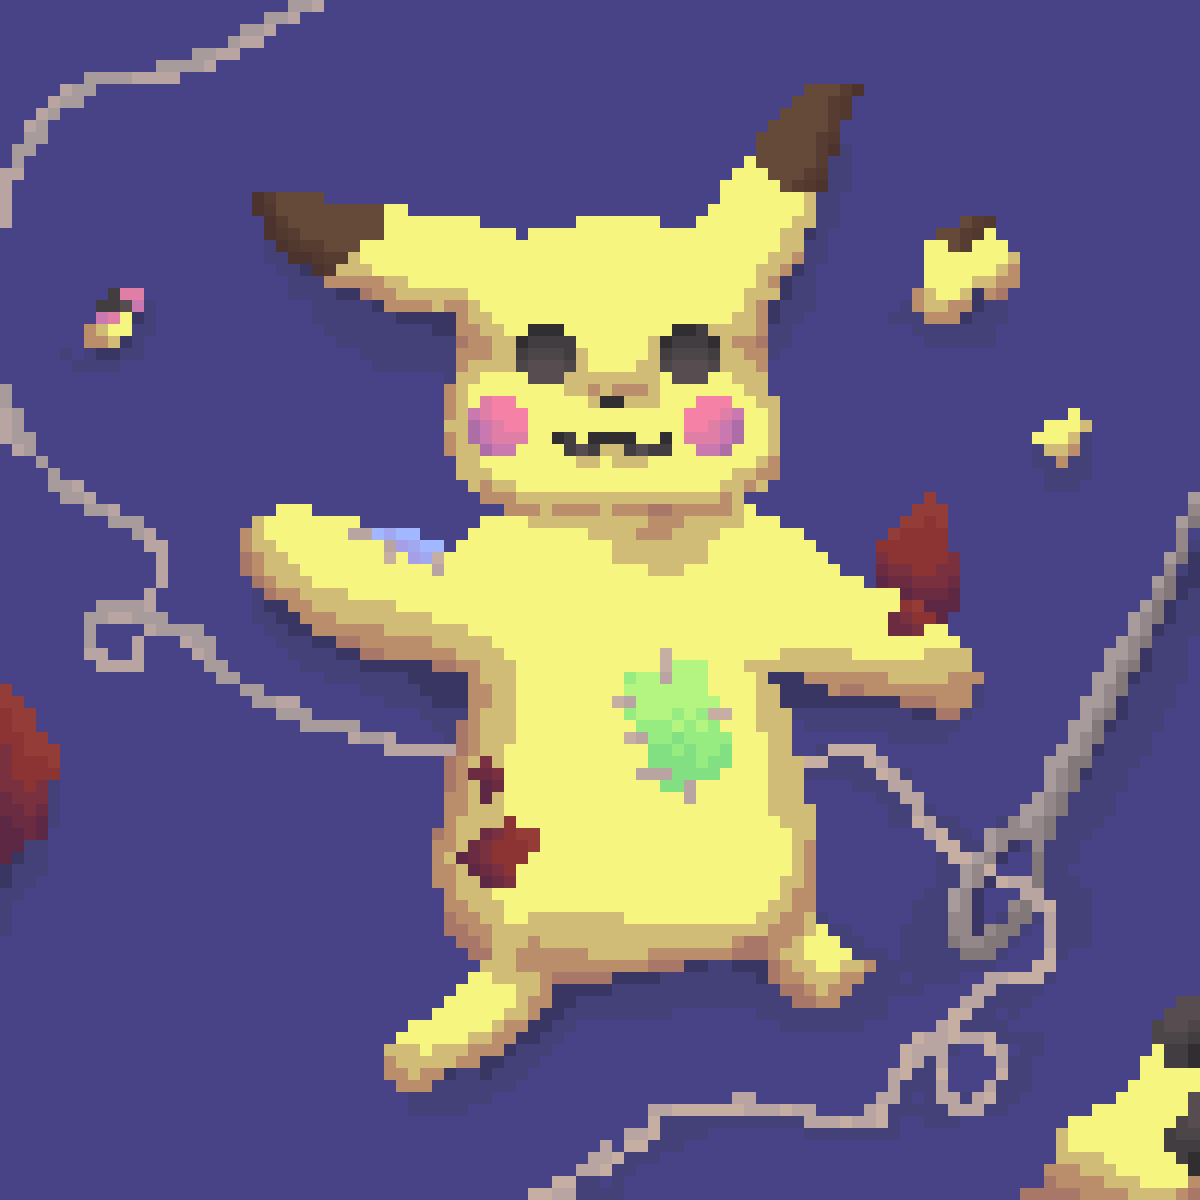 Fixing Pikachu by LadyPig